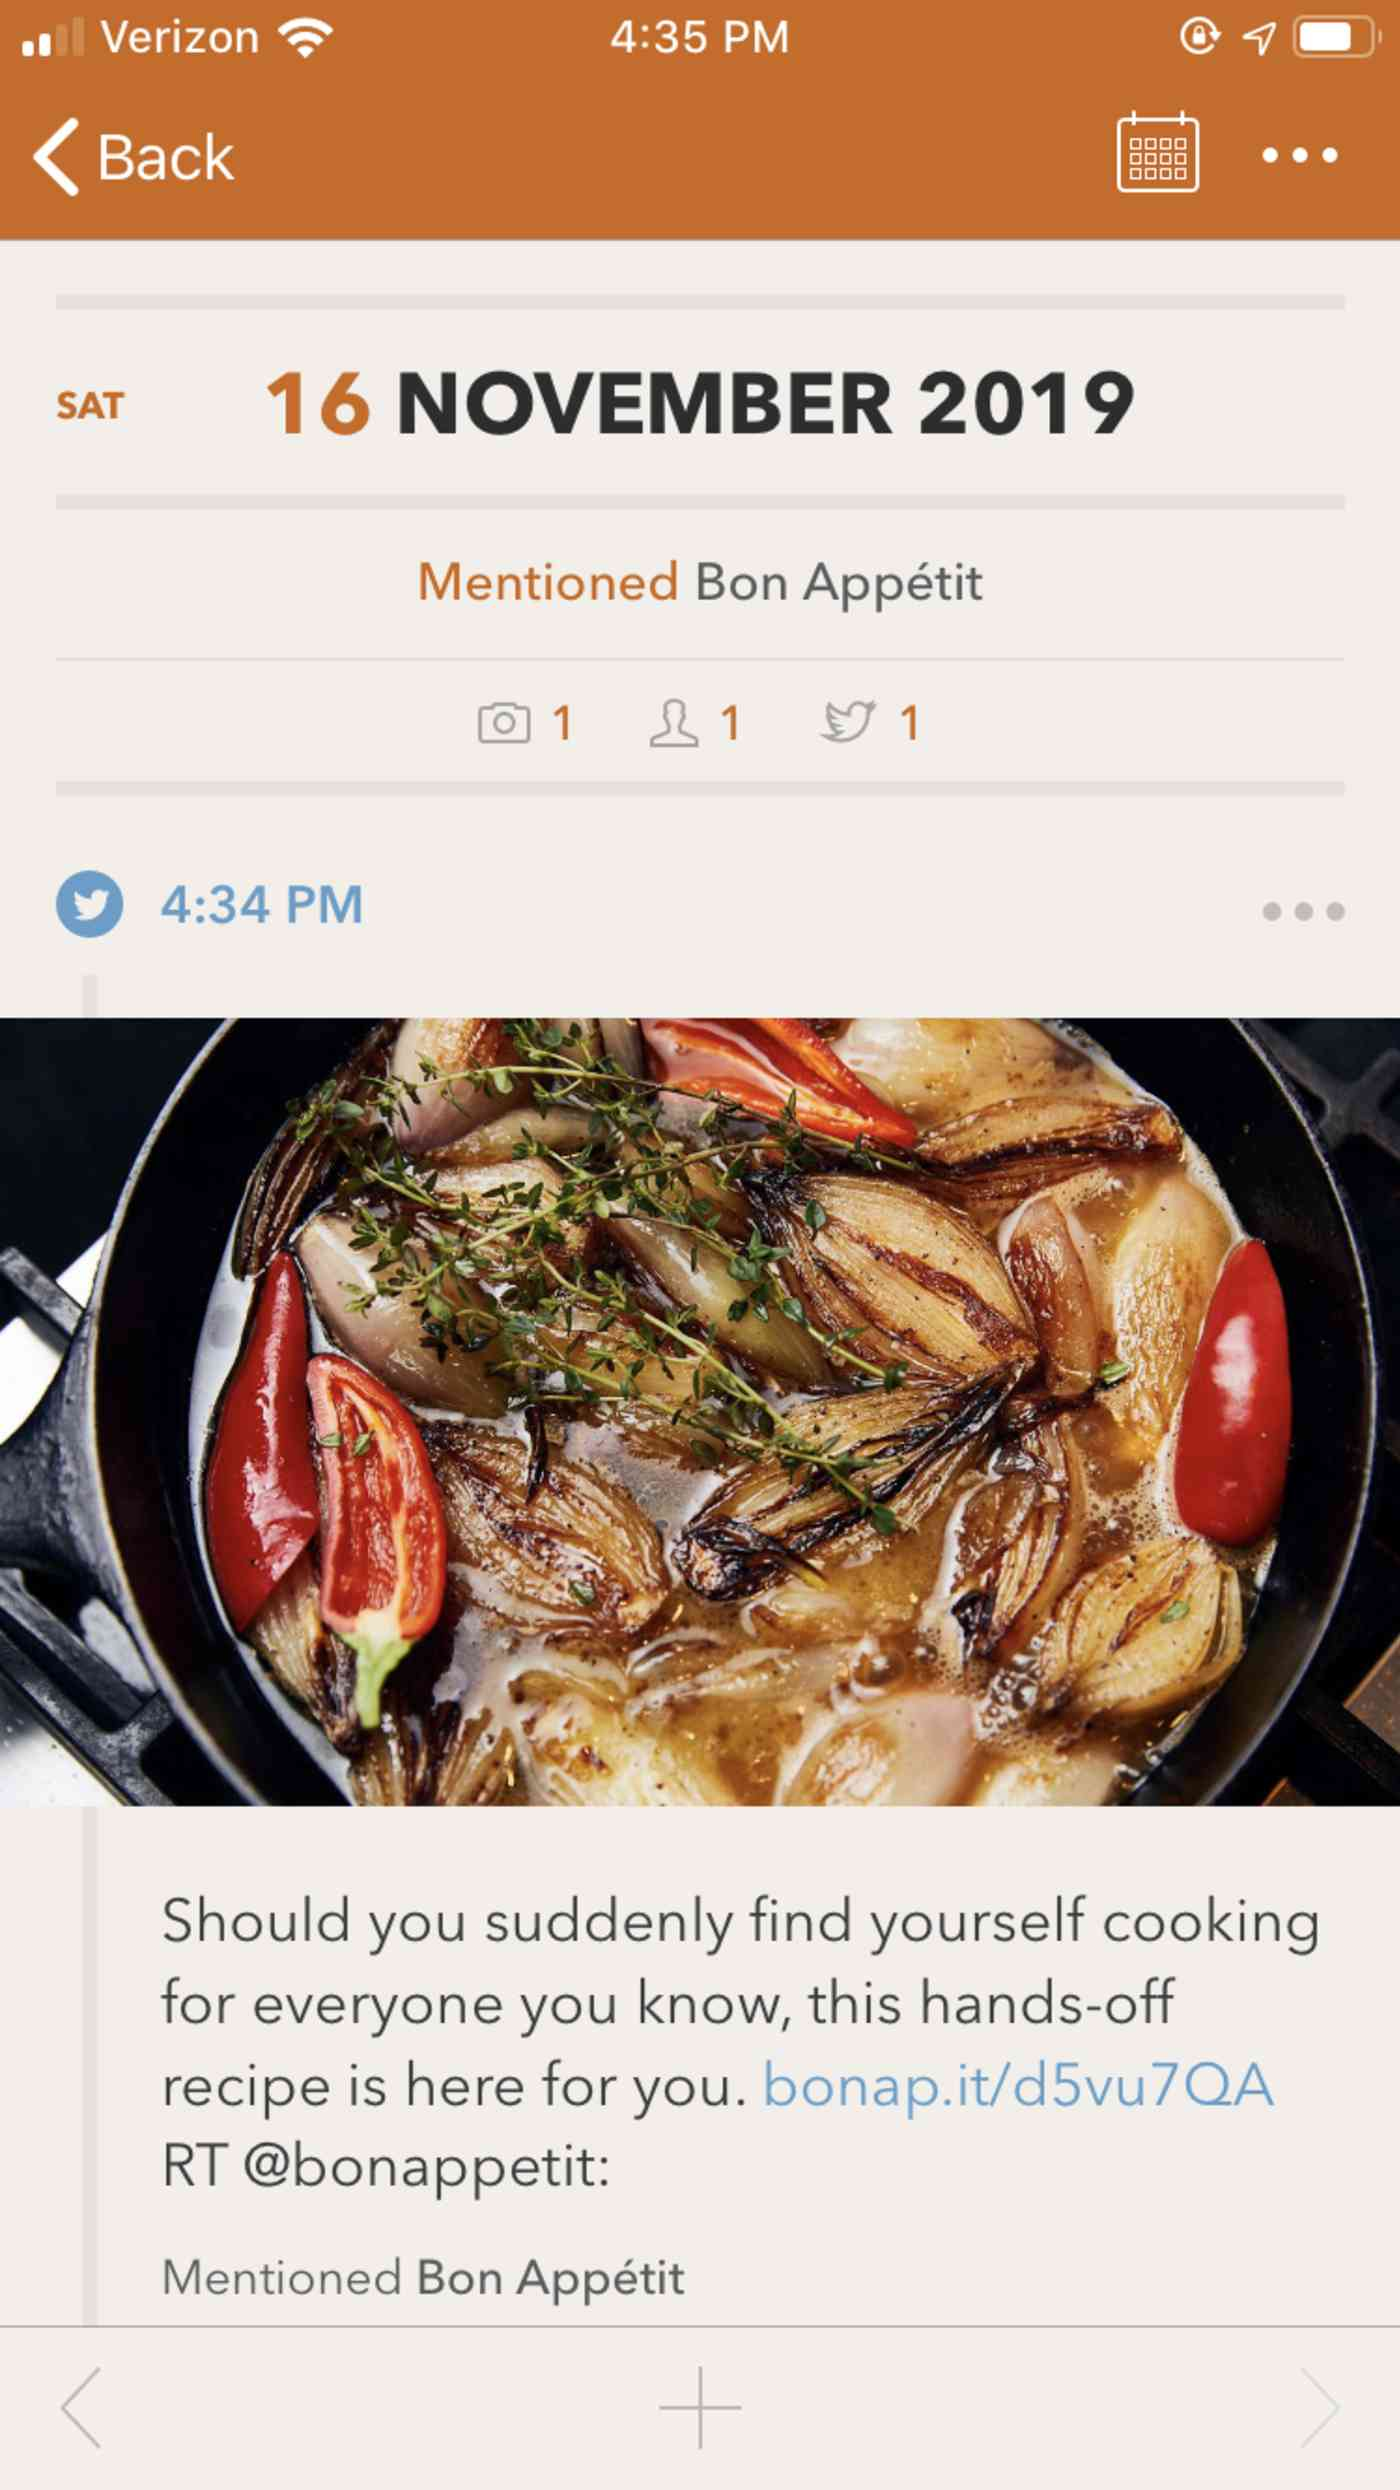 Momento journal entry showing a Twitter post with a Bon Appetit recipe